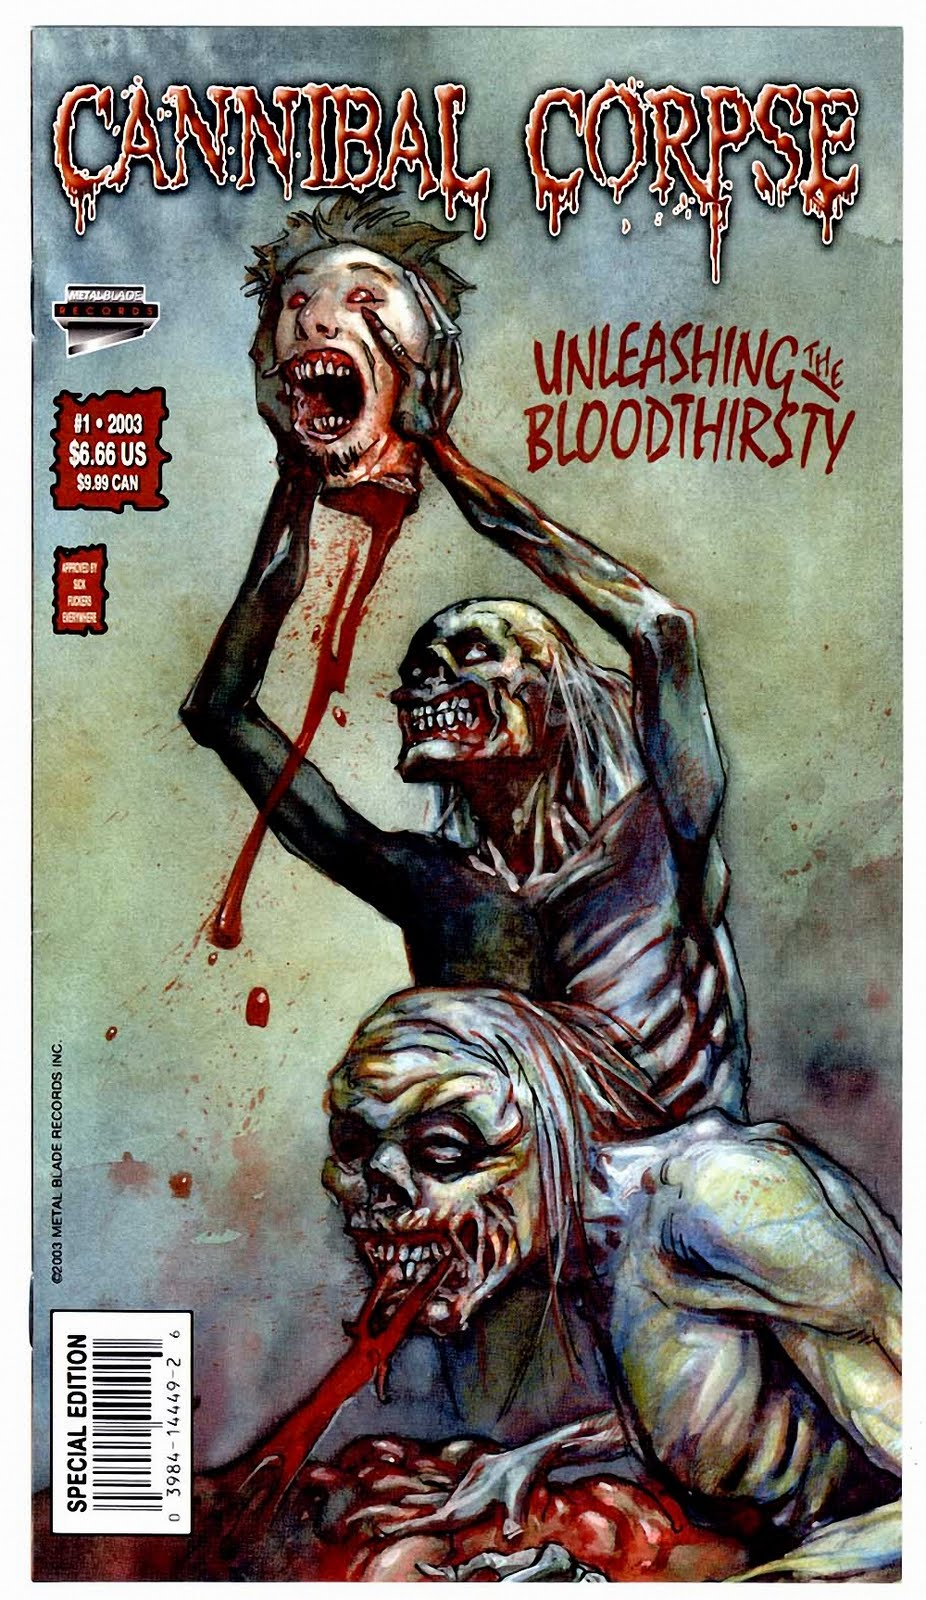 CANNIBAL CORPSE - Unleashing The Bloodthirsty (COMIC)